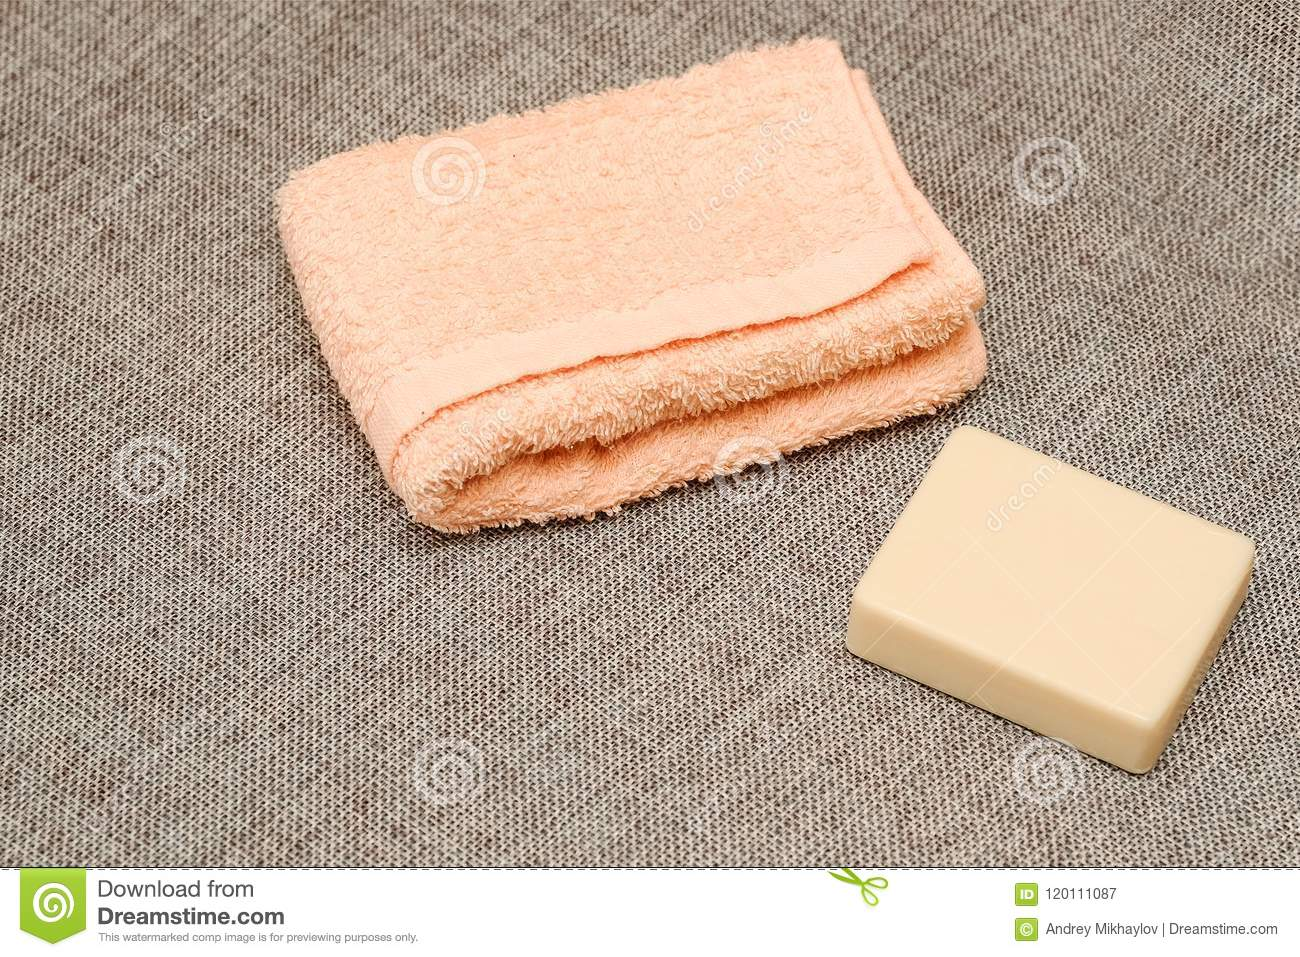 Soap and towel. Shower accessories. Hygiene items.